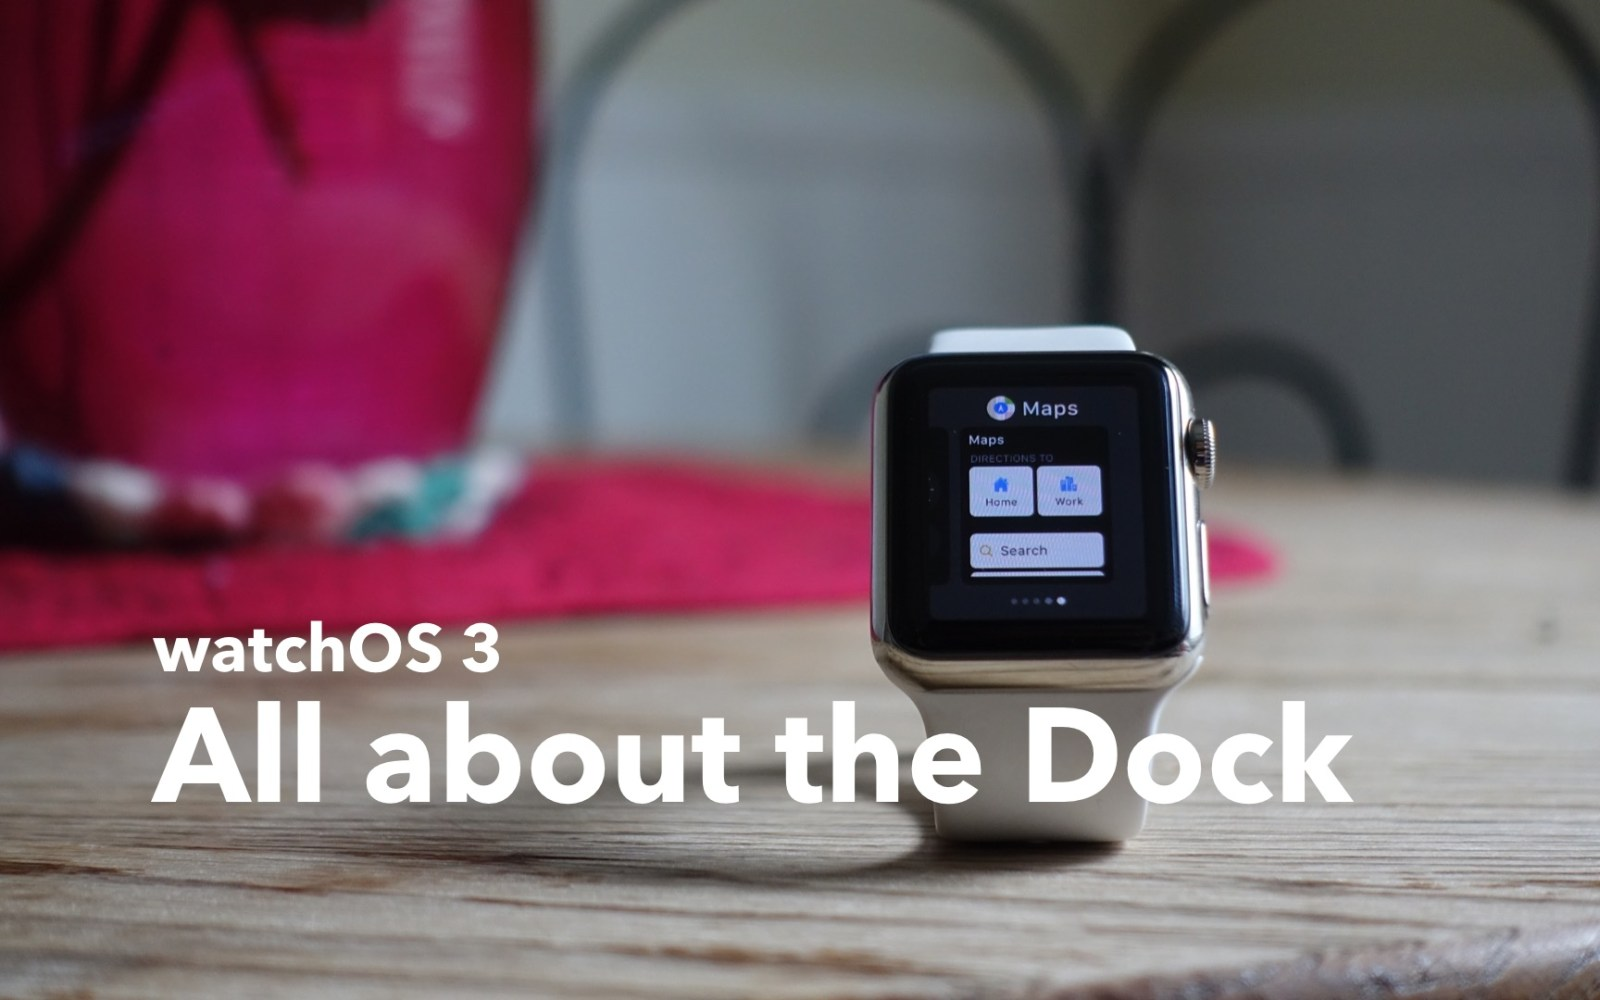 The Dock in watchOS 3 breathes new life into the Apple Watch [Video]